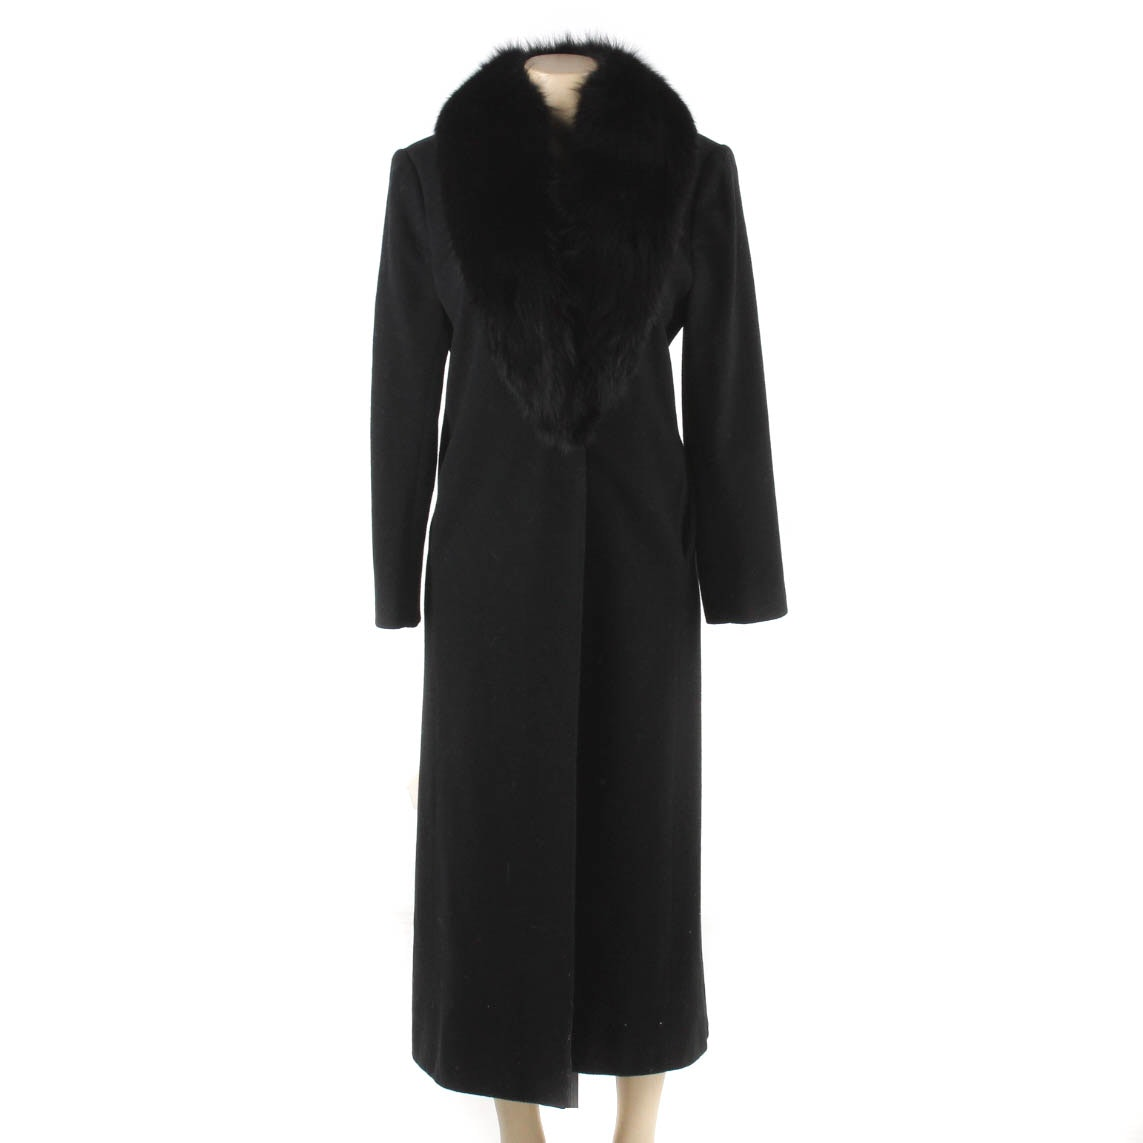 J. Percy for Marvin Richards Black Lamb's Wool Coat with Black Fox Collar